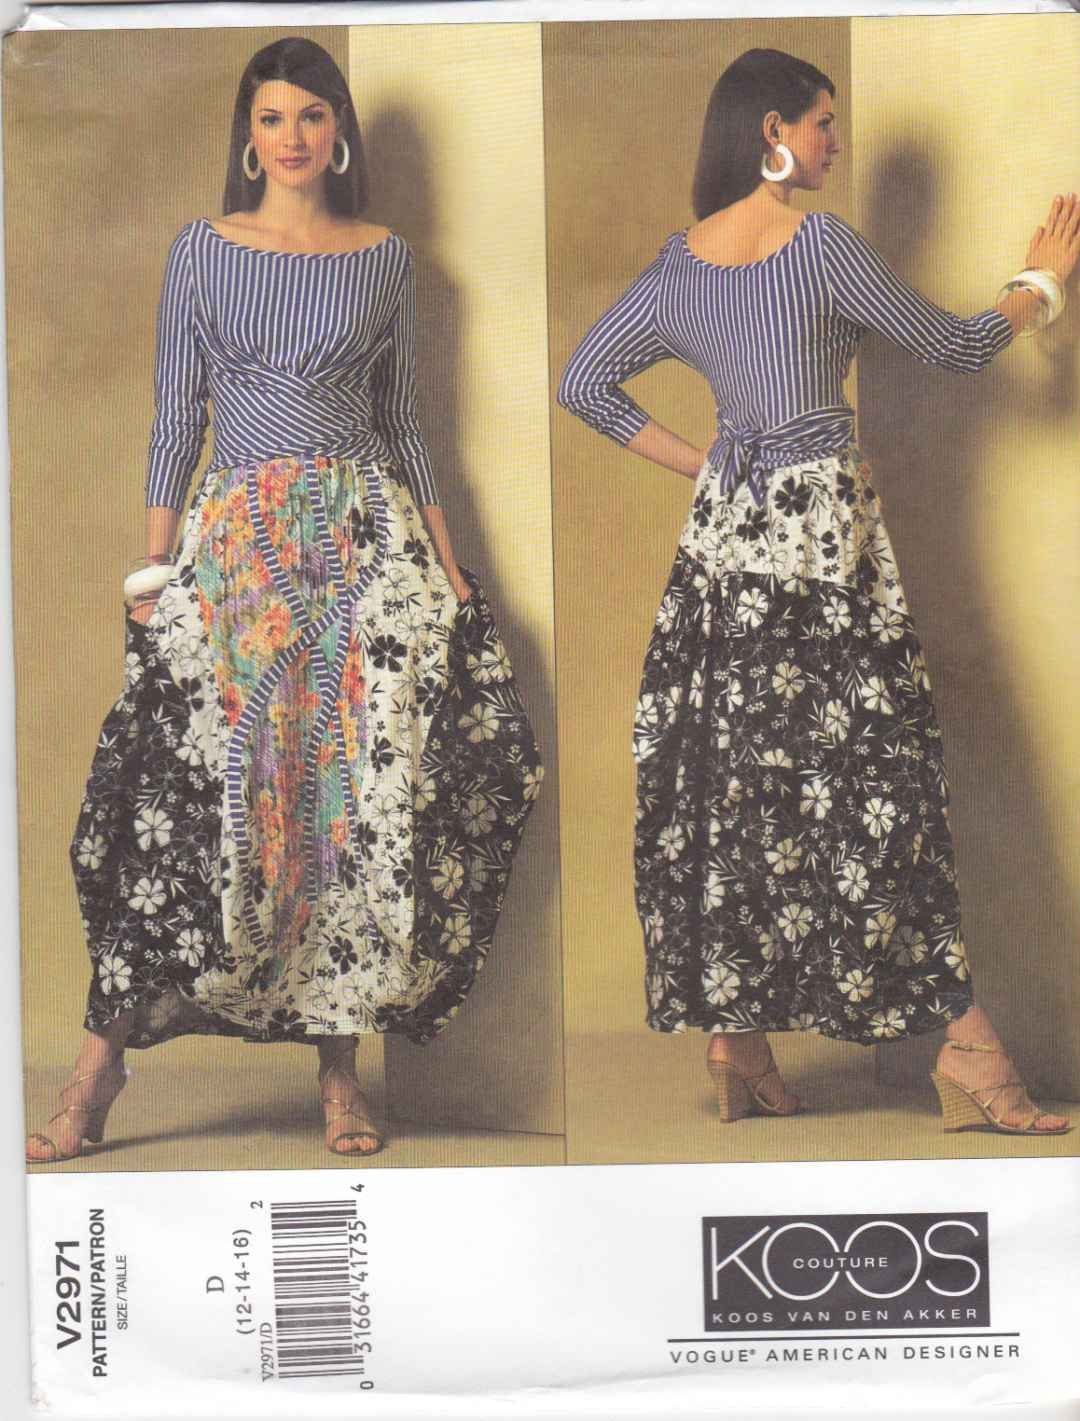 Vogue Sewing Pattern 2971 Misses Size 6-10 Koos Van Den Akker Knit Top Flared Contrast Skirt